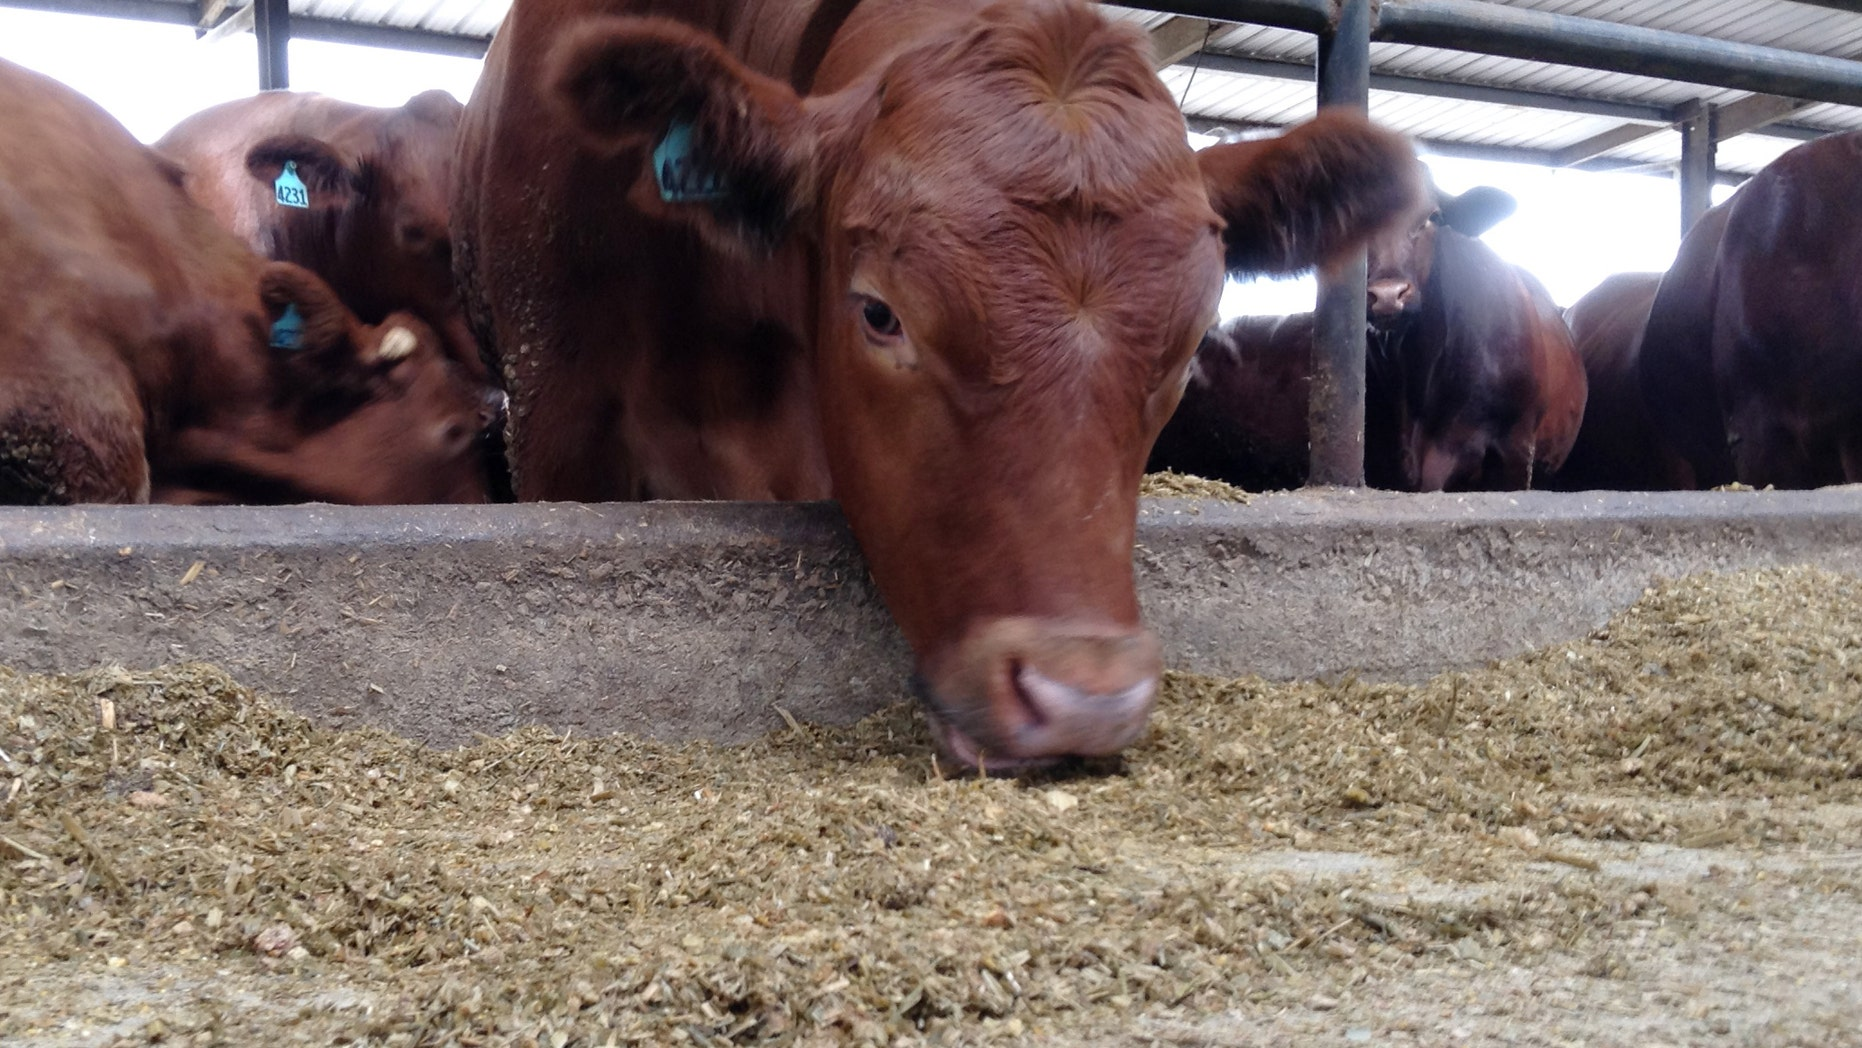 Oct. 15, 2013: In this photo, a cow eats in a feedlot at Suwannee Farms in O'Brien, Fla.